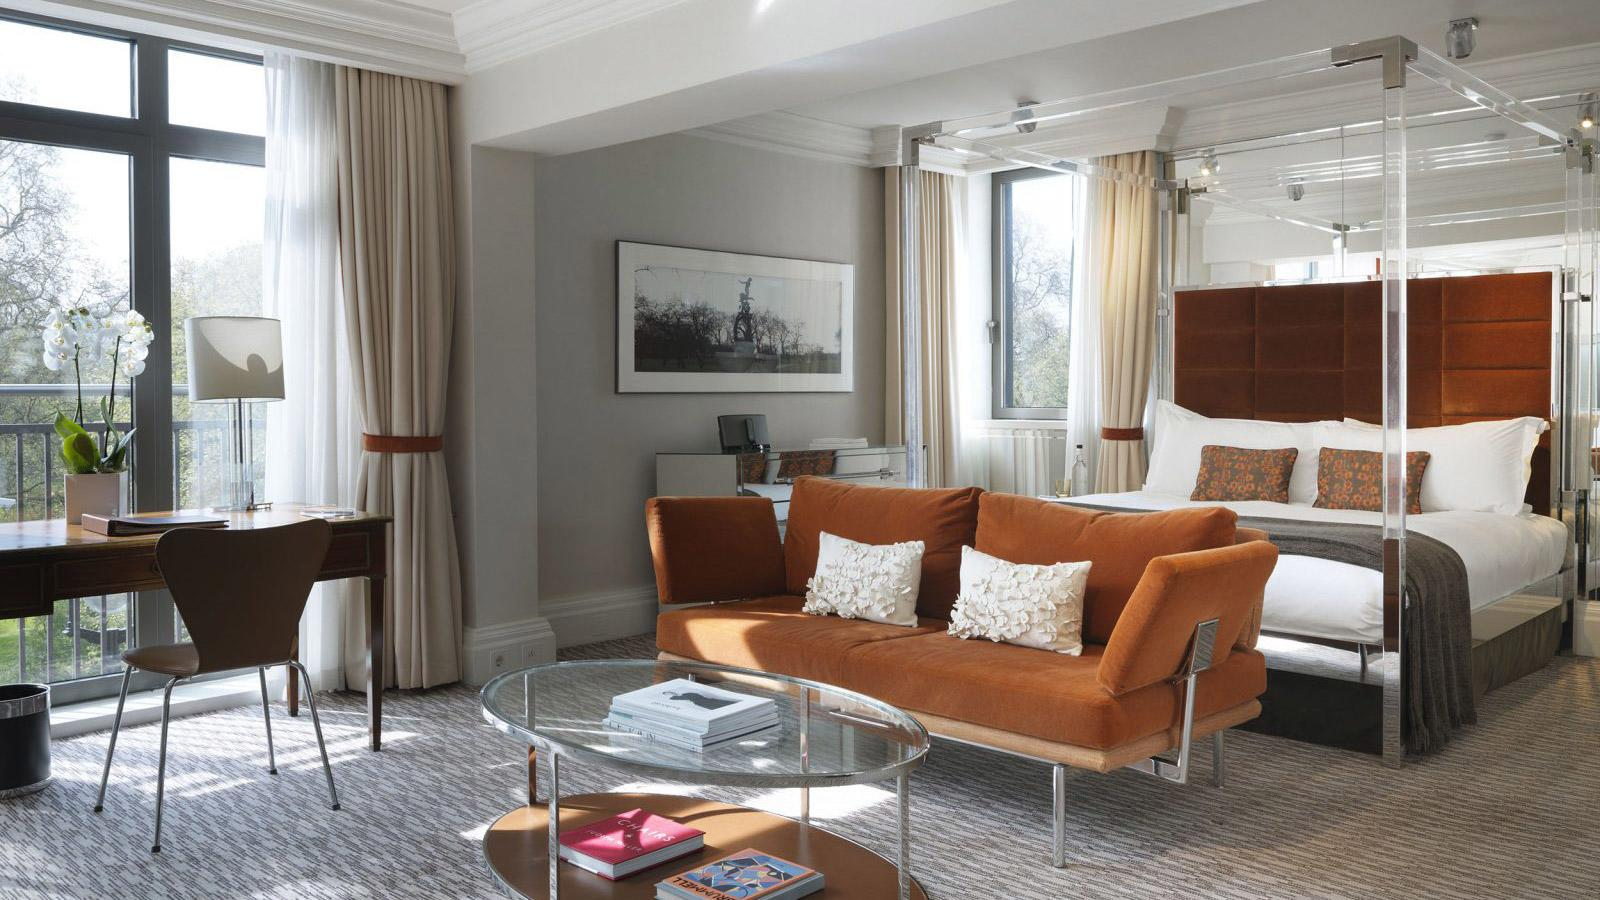 THE ATHENAEUM HOTEL in London Design Guide london design guide LONDON DESIGN GUIDE xthe athenaeum london suite